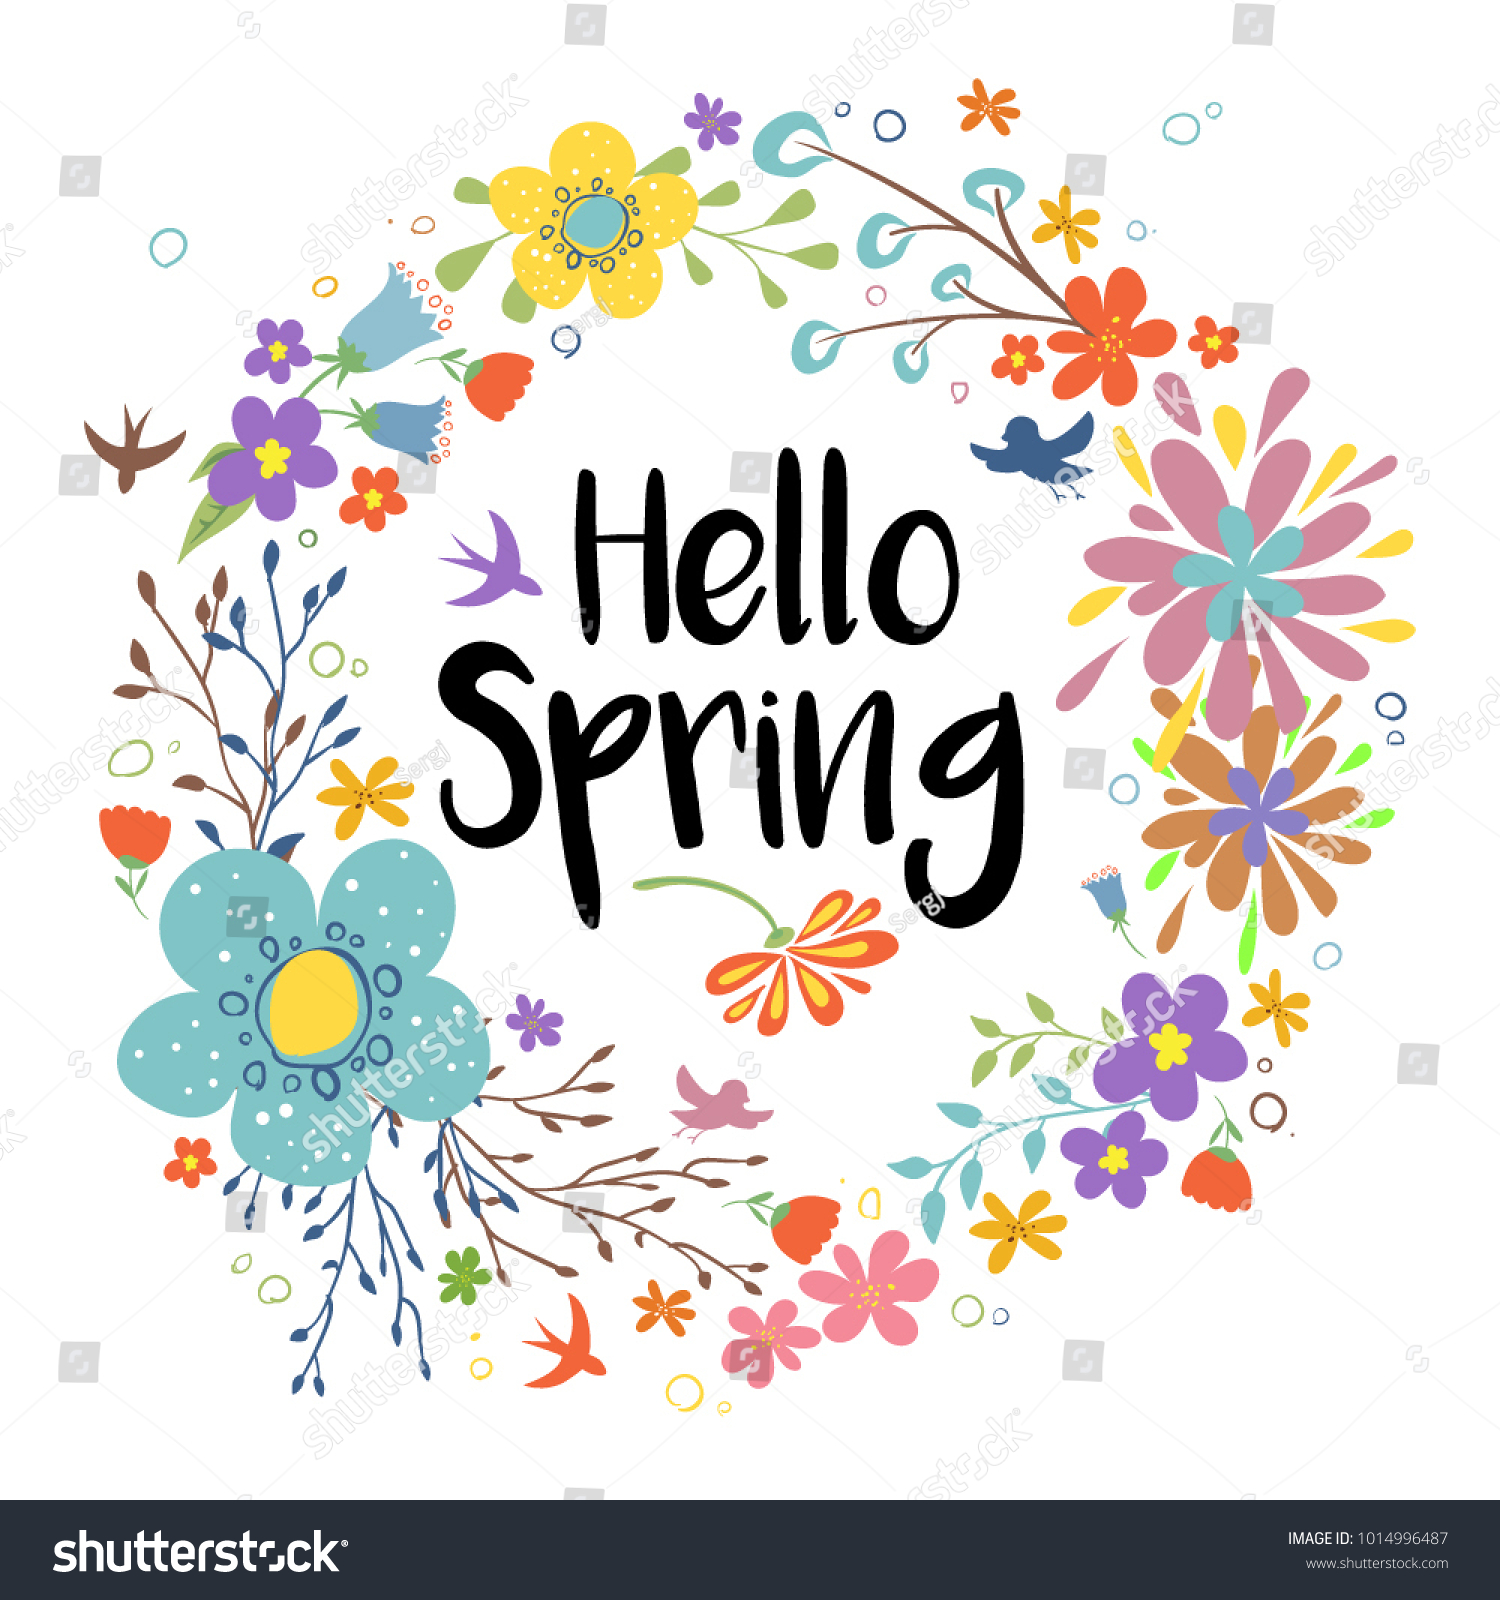 hello spring vector illustration floral spring stock vector (royalty free)  1014996487  shutterstock